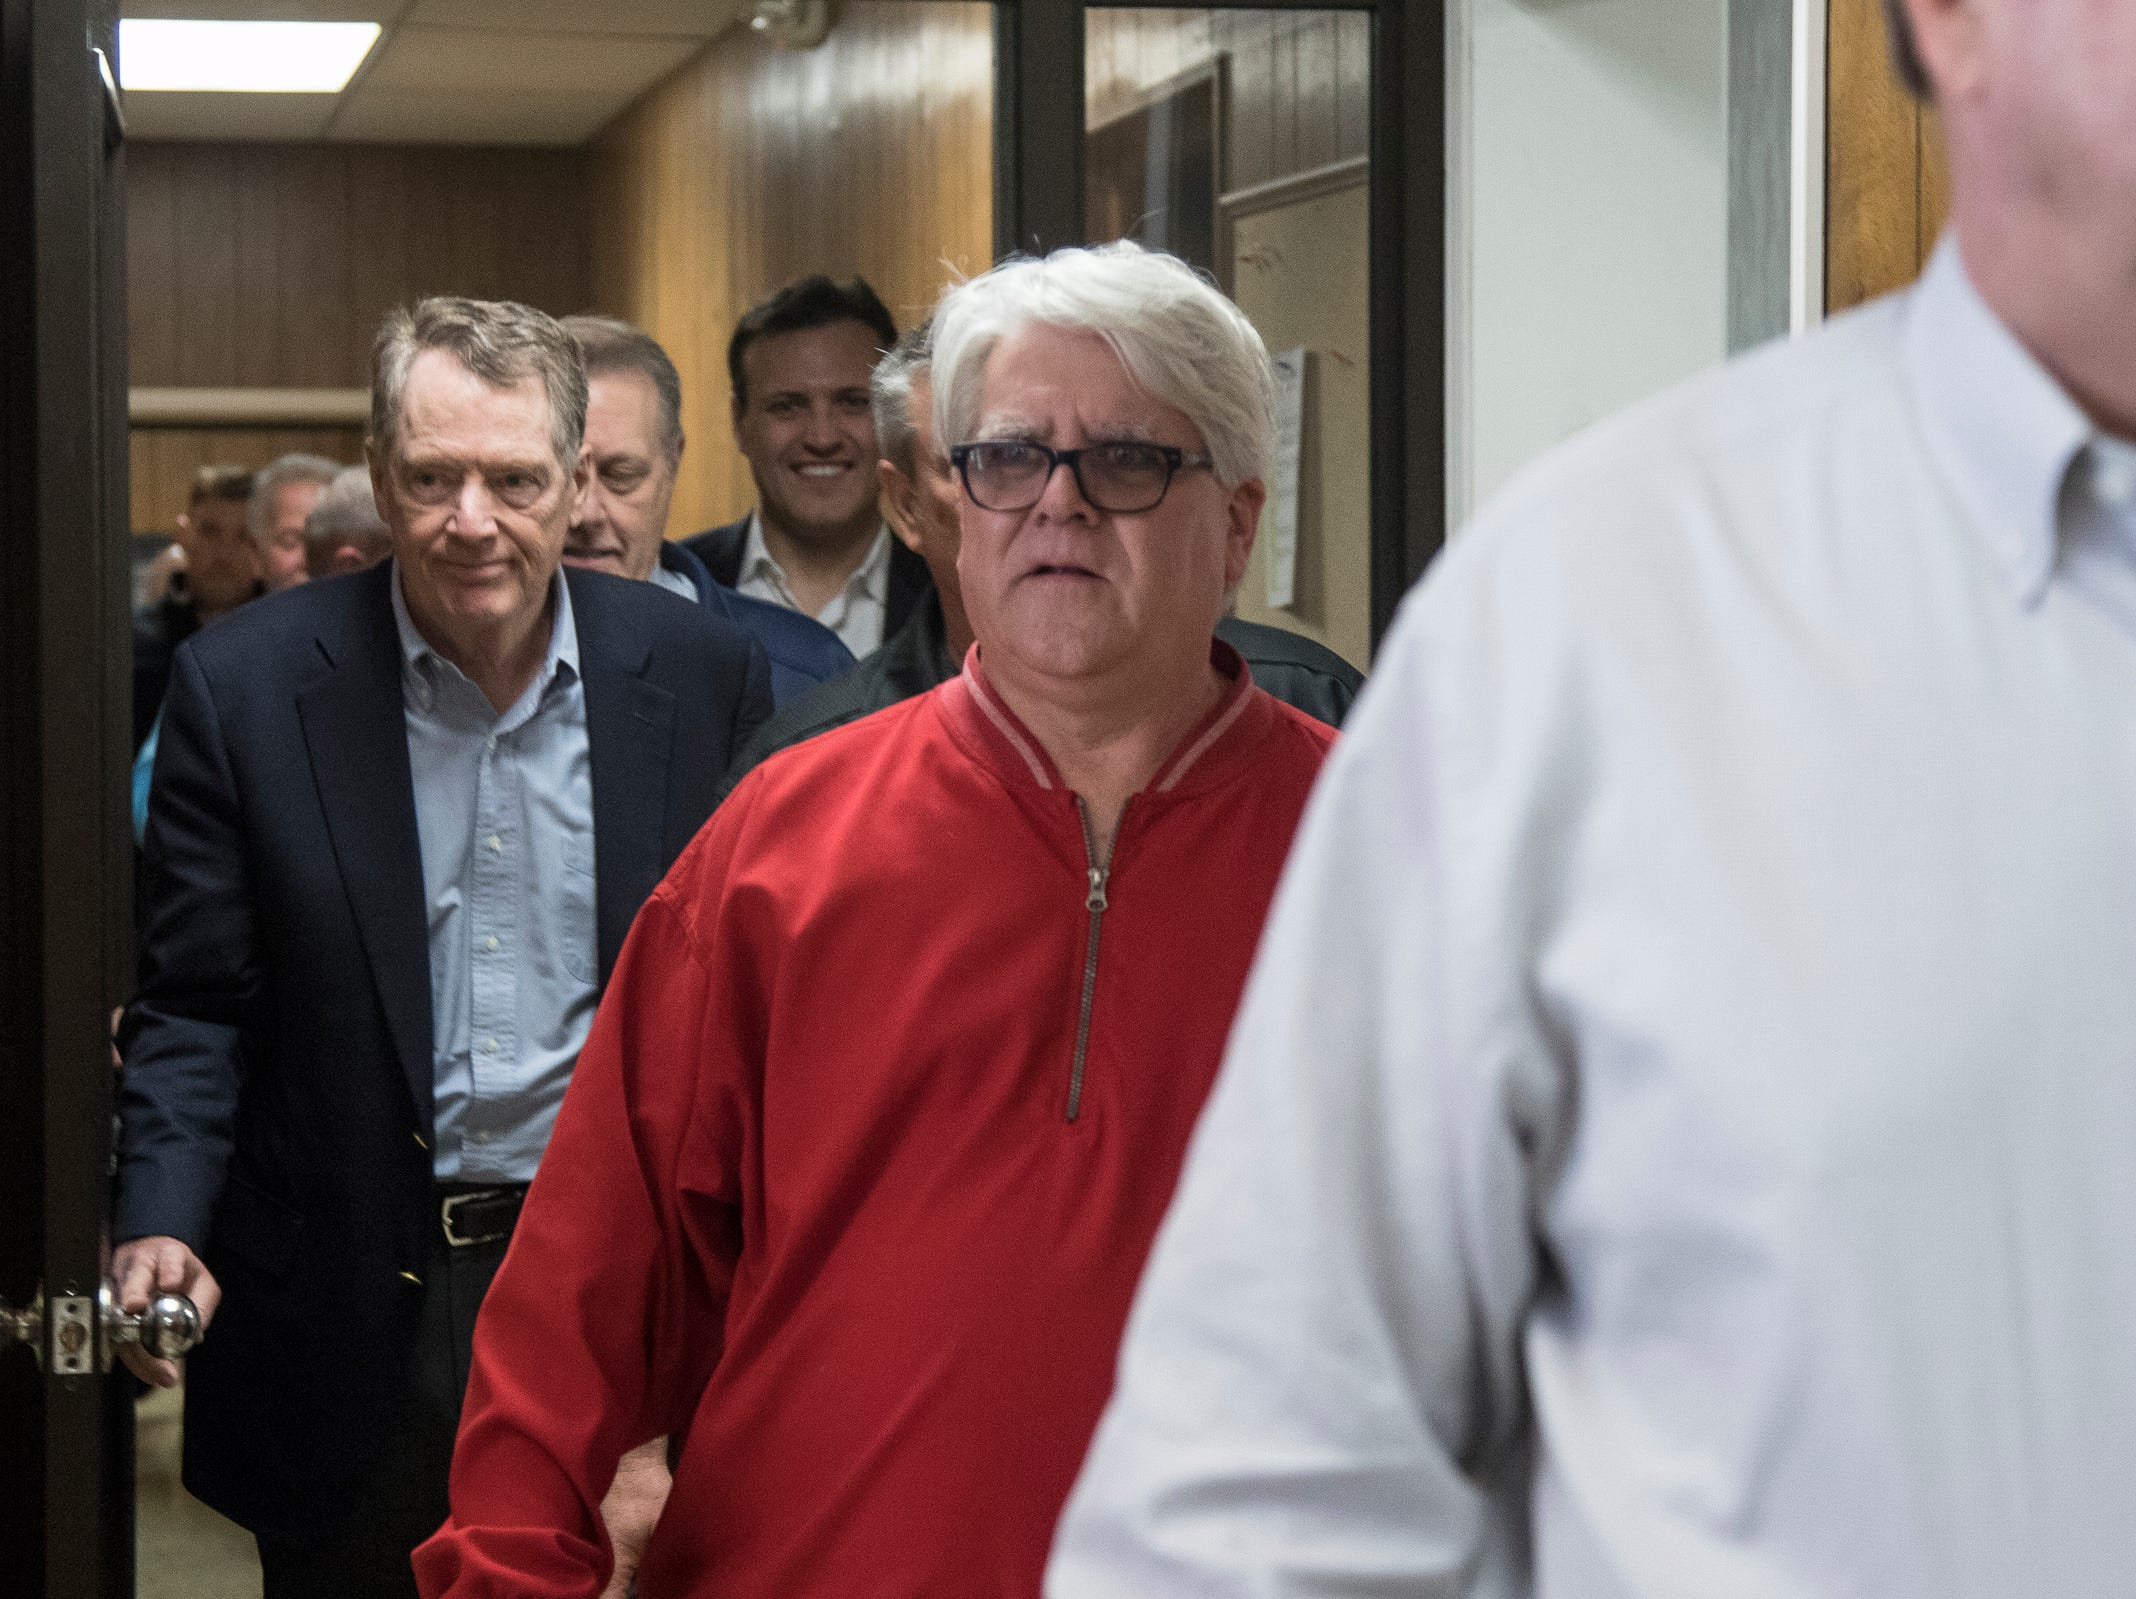 Robert Lighthizer, U.S.  trade representative, left, walks into the UAW Local 600 building in Dearborn following Bernie Ricke, UAW local 600 president, center, and Gary Jones, UAW president before the meeting, Tuesday, March 5, 2019.